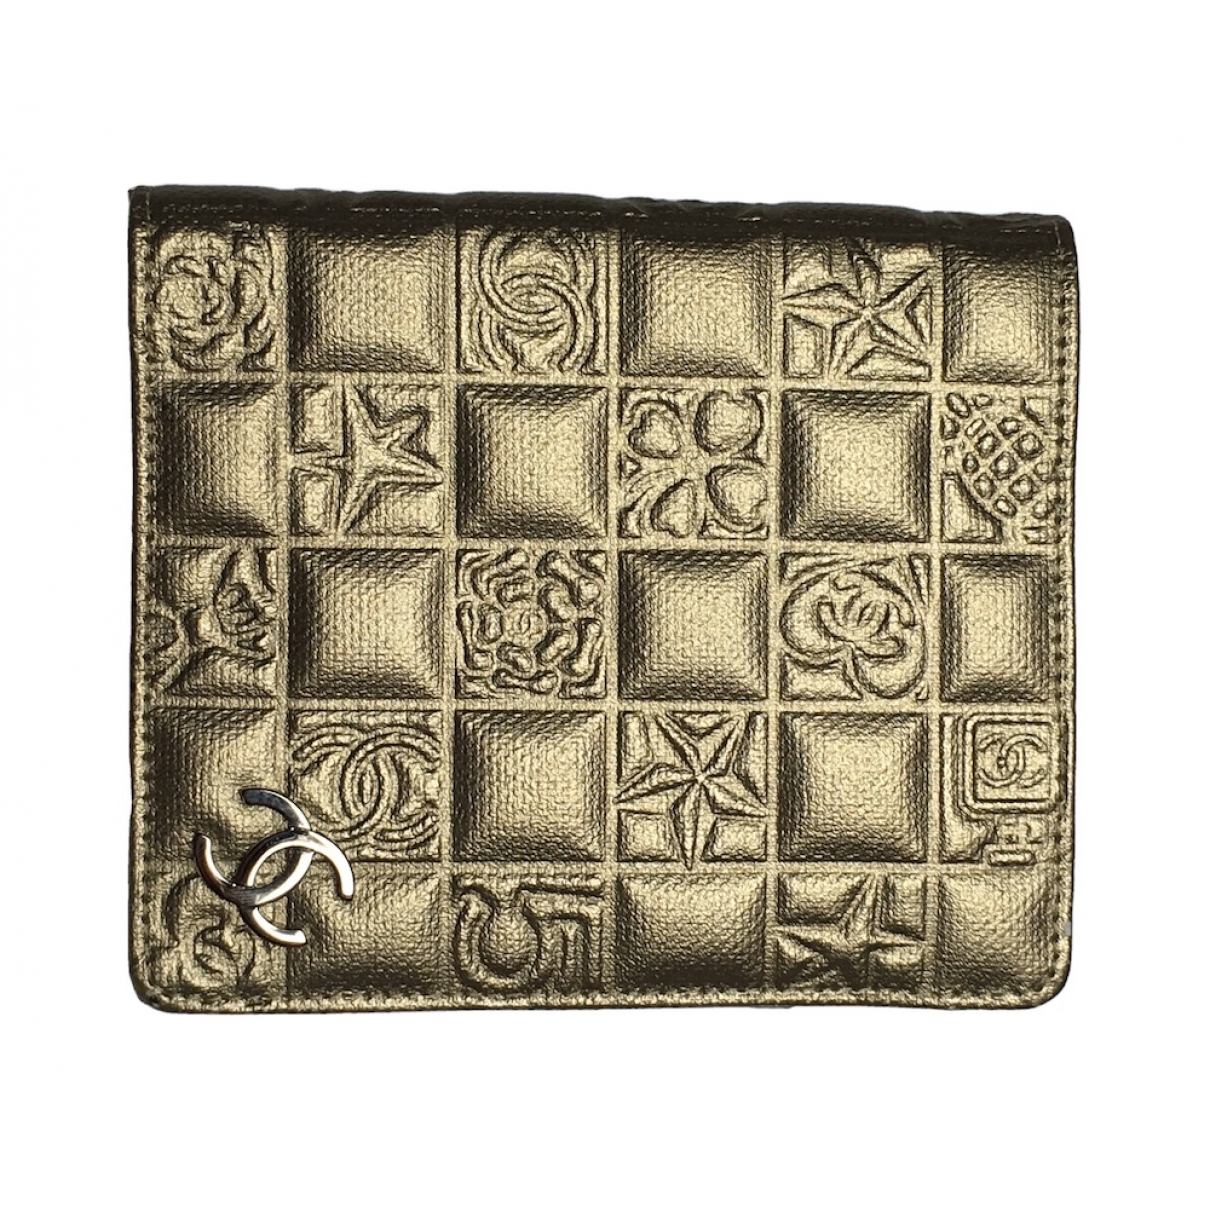 Chanel \N Gold Leather wallet for Women \N